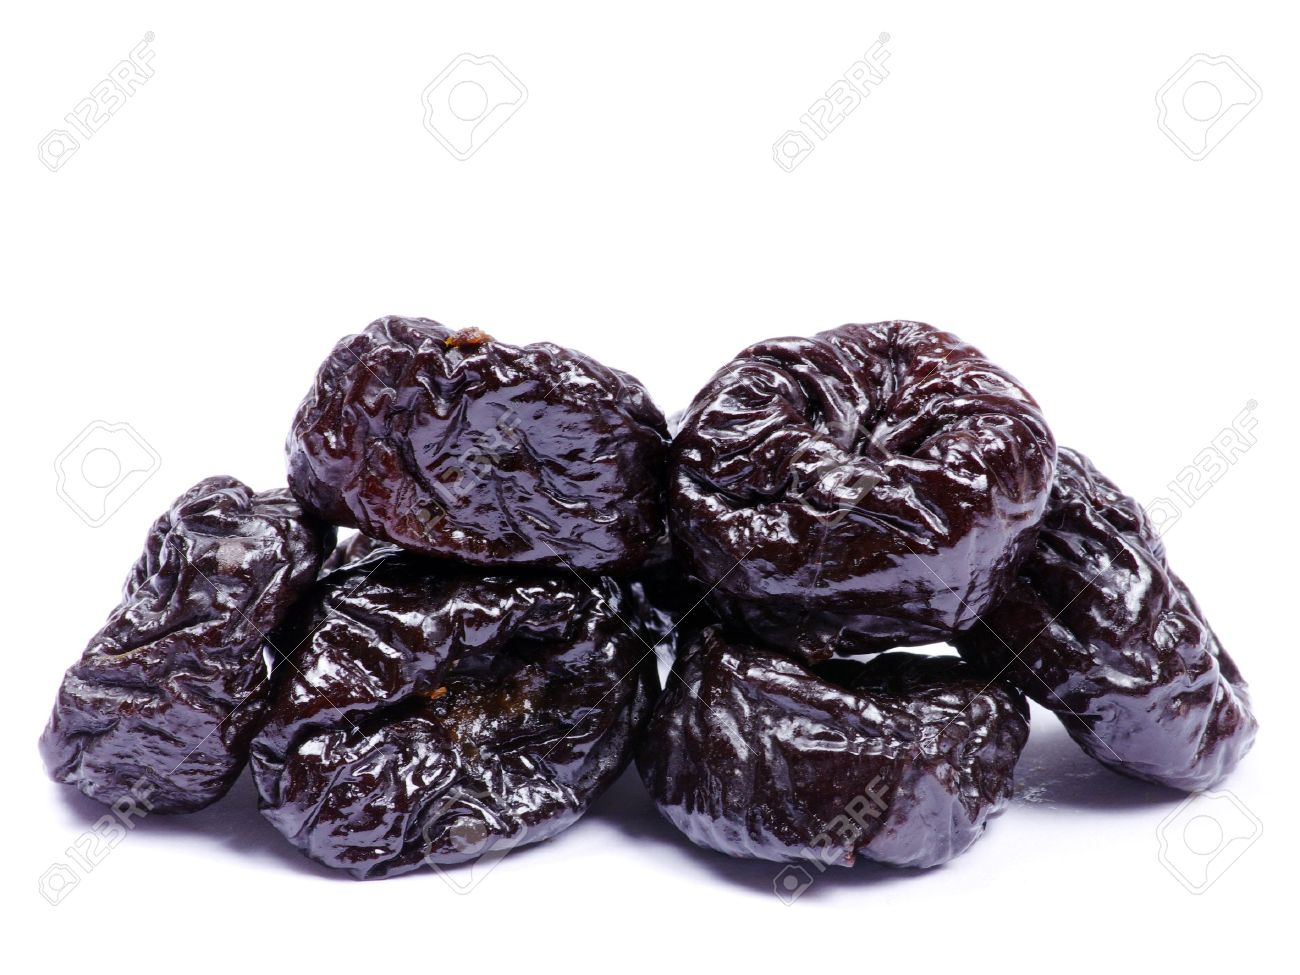 Dried plum on a white background Stock Photo - 15636312